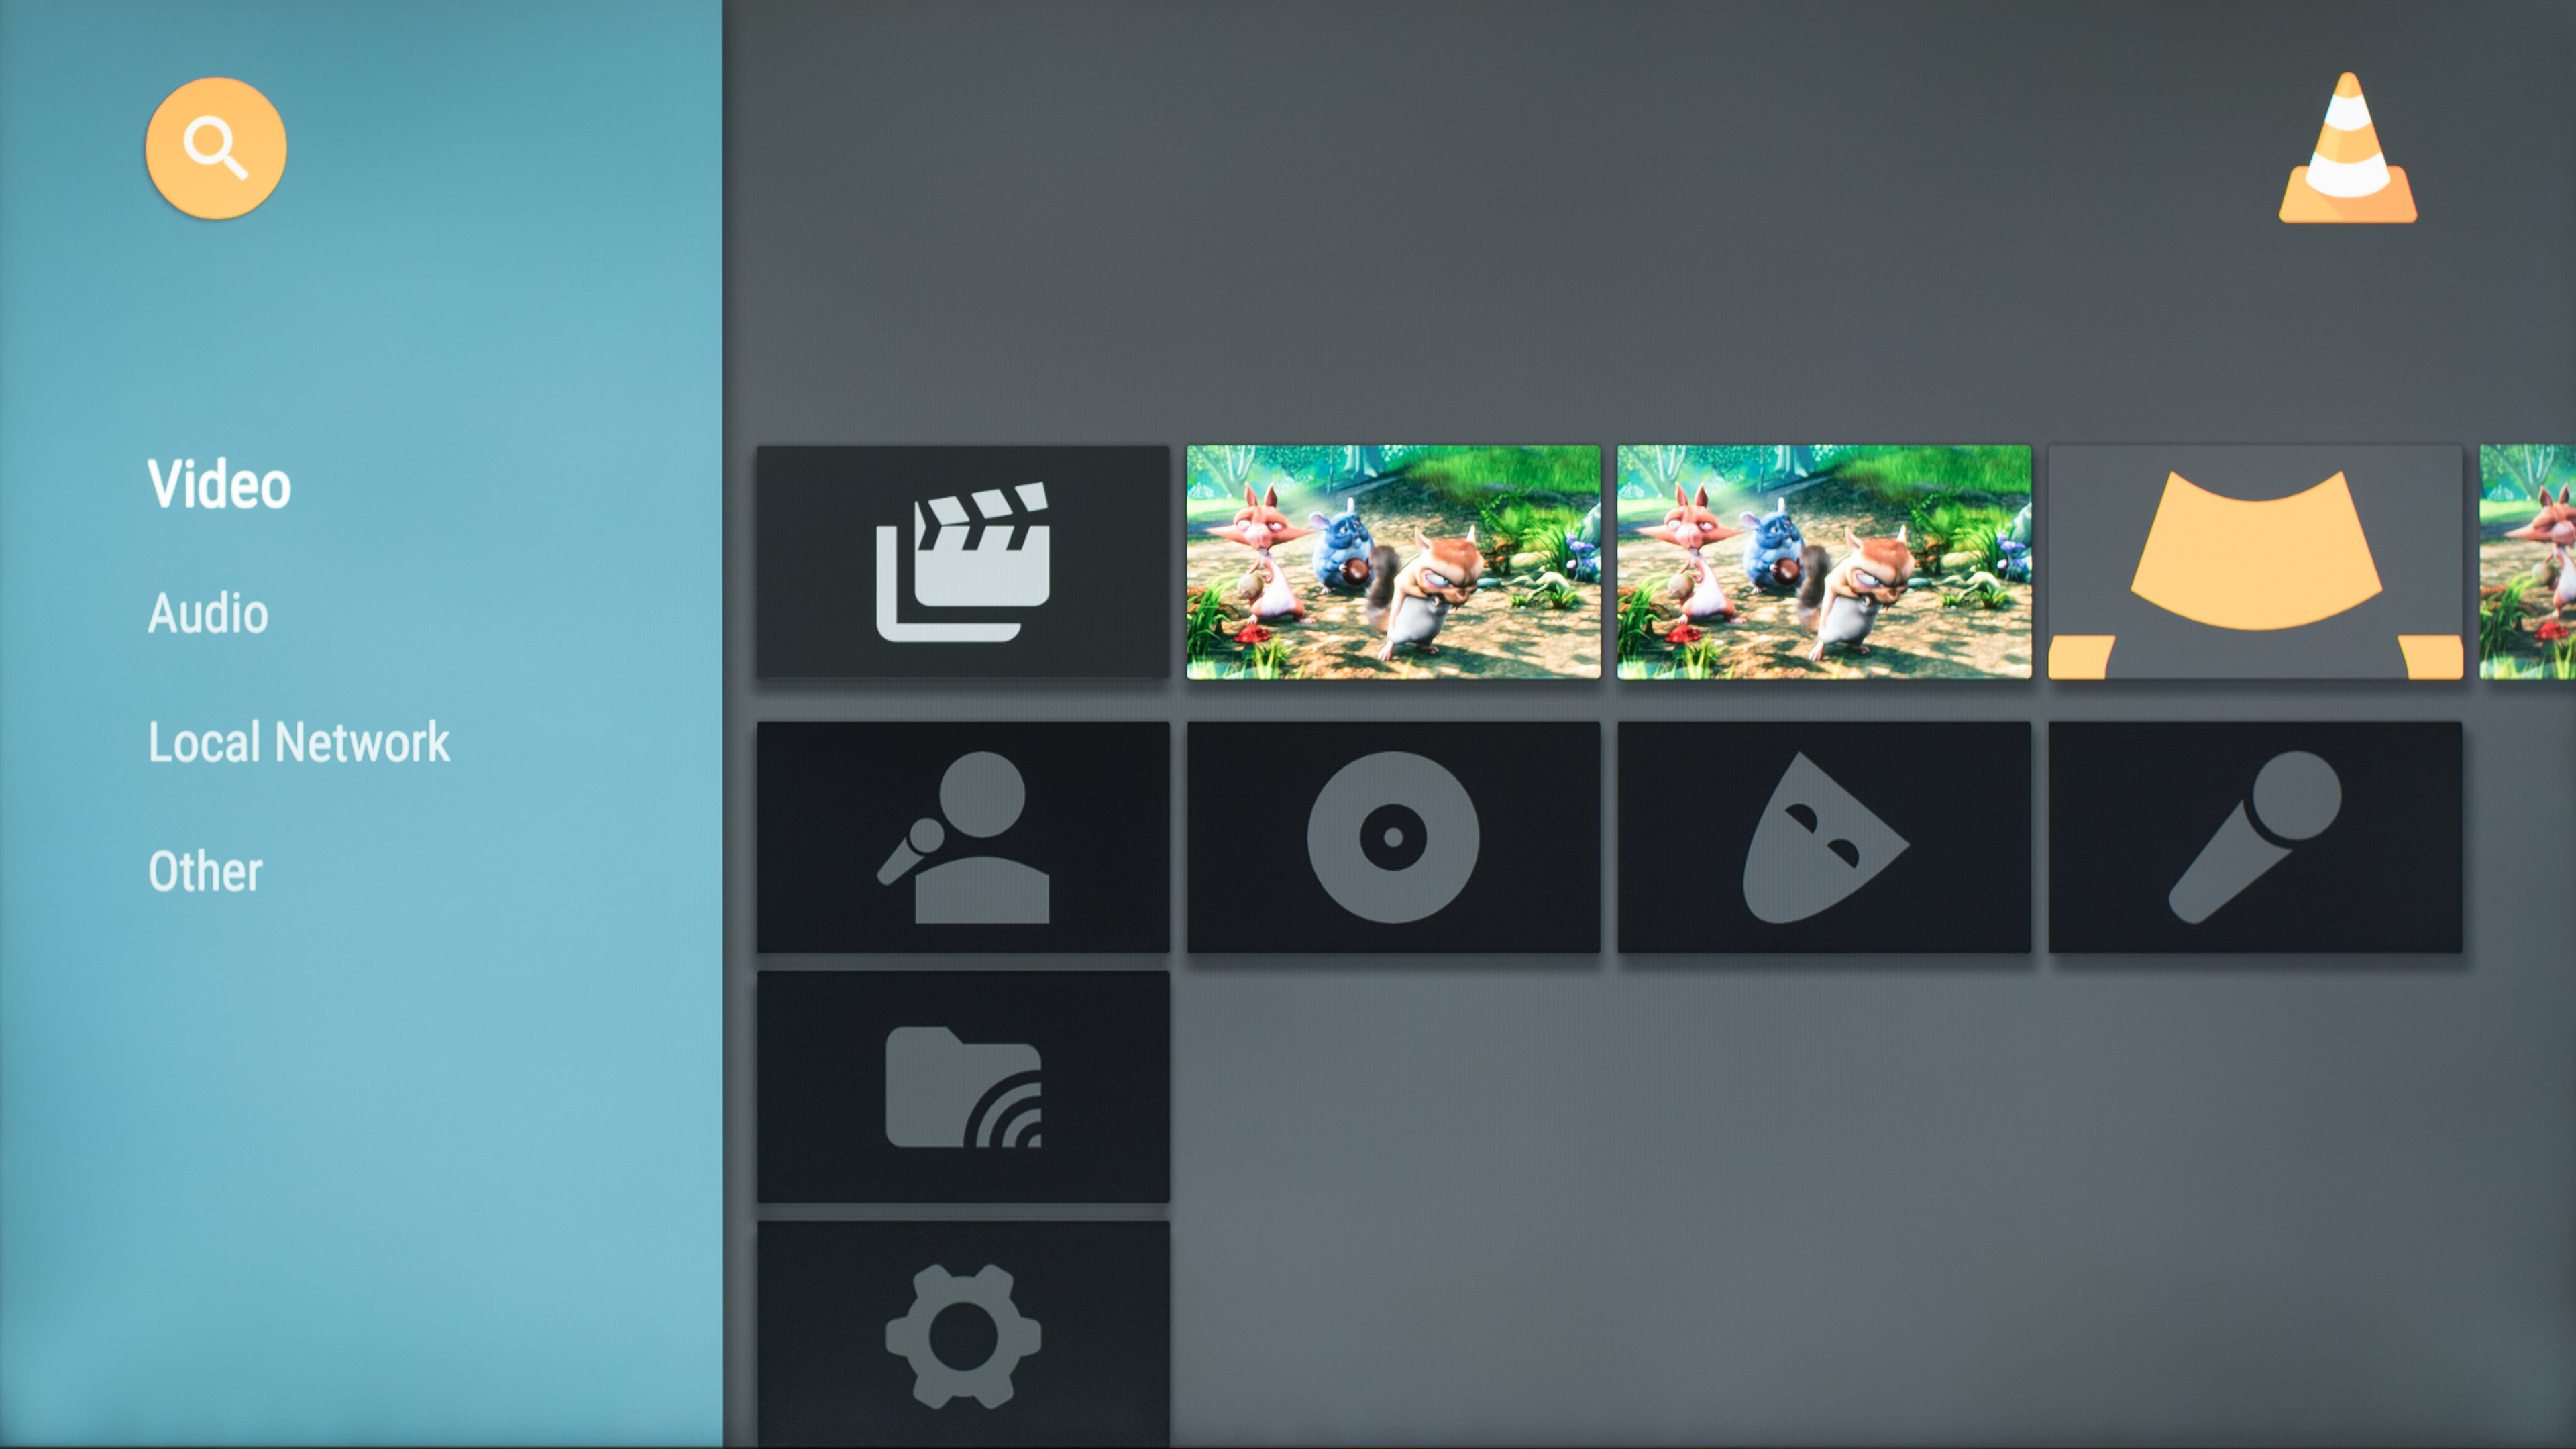 How to get to settings on samsung smart tv